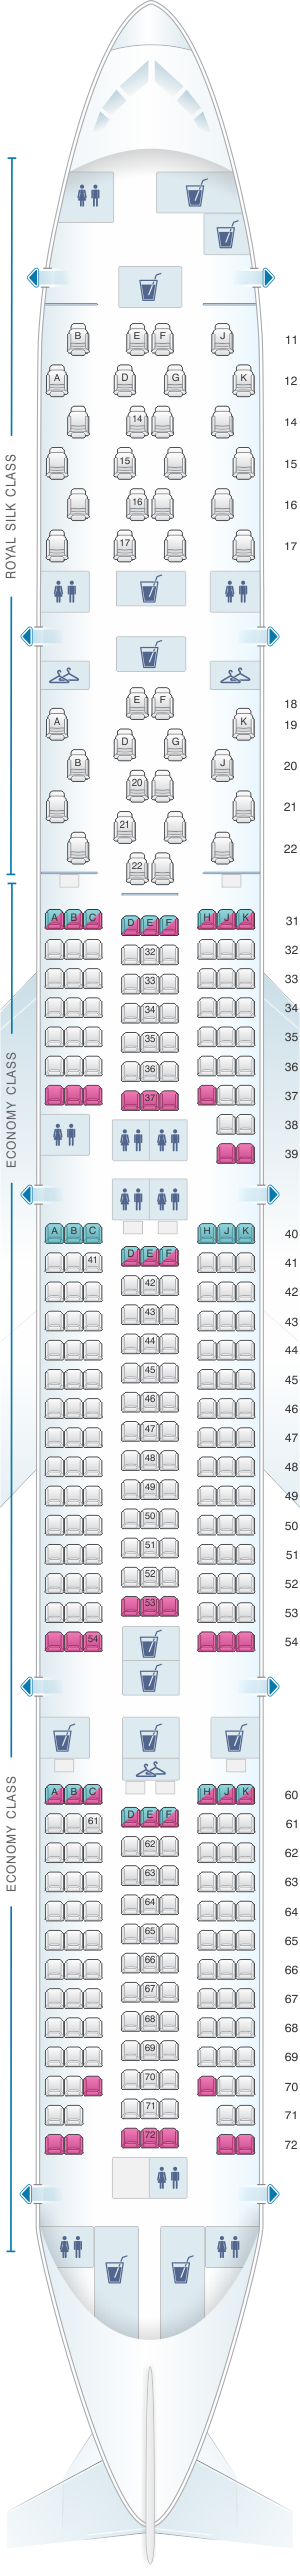 Seat map for Thai Airways International Boeing B777 300ER